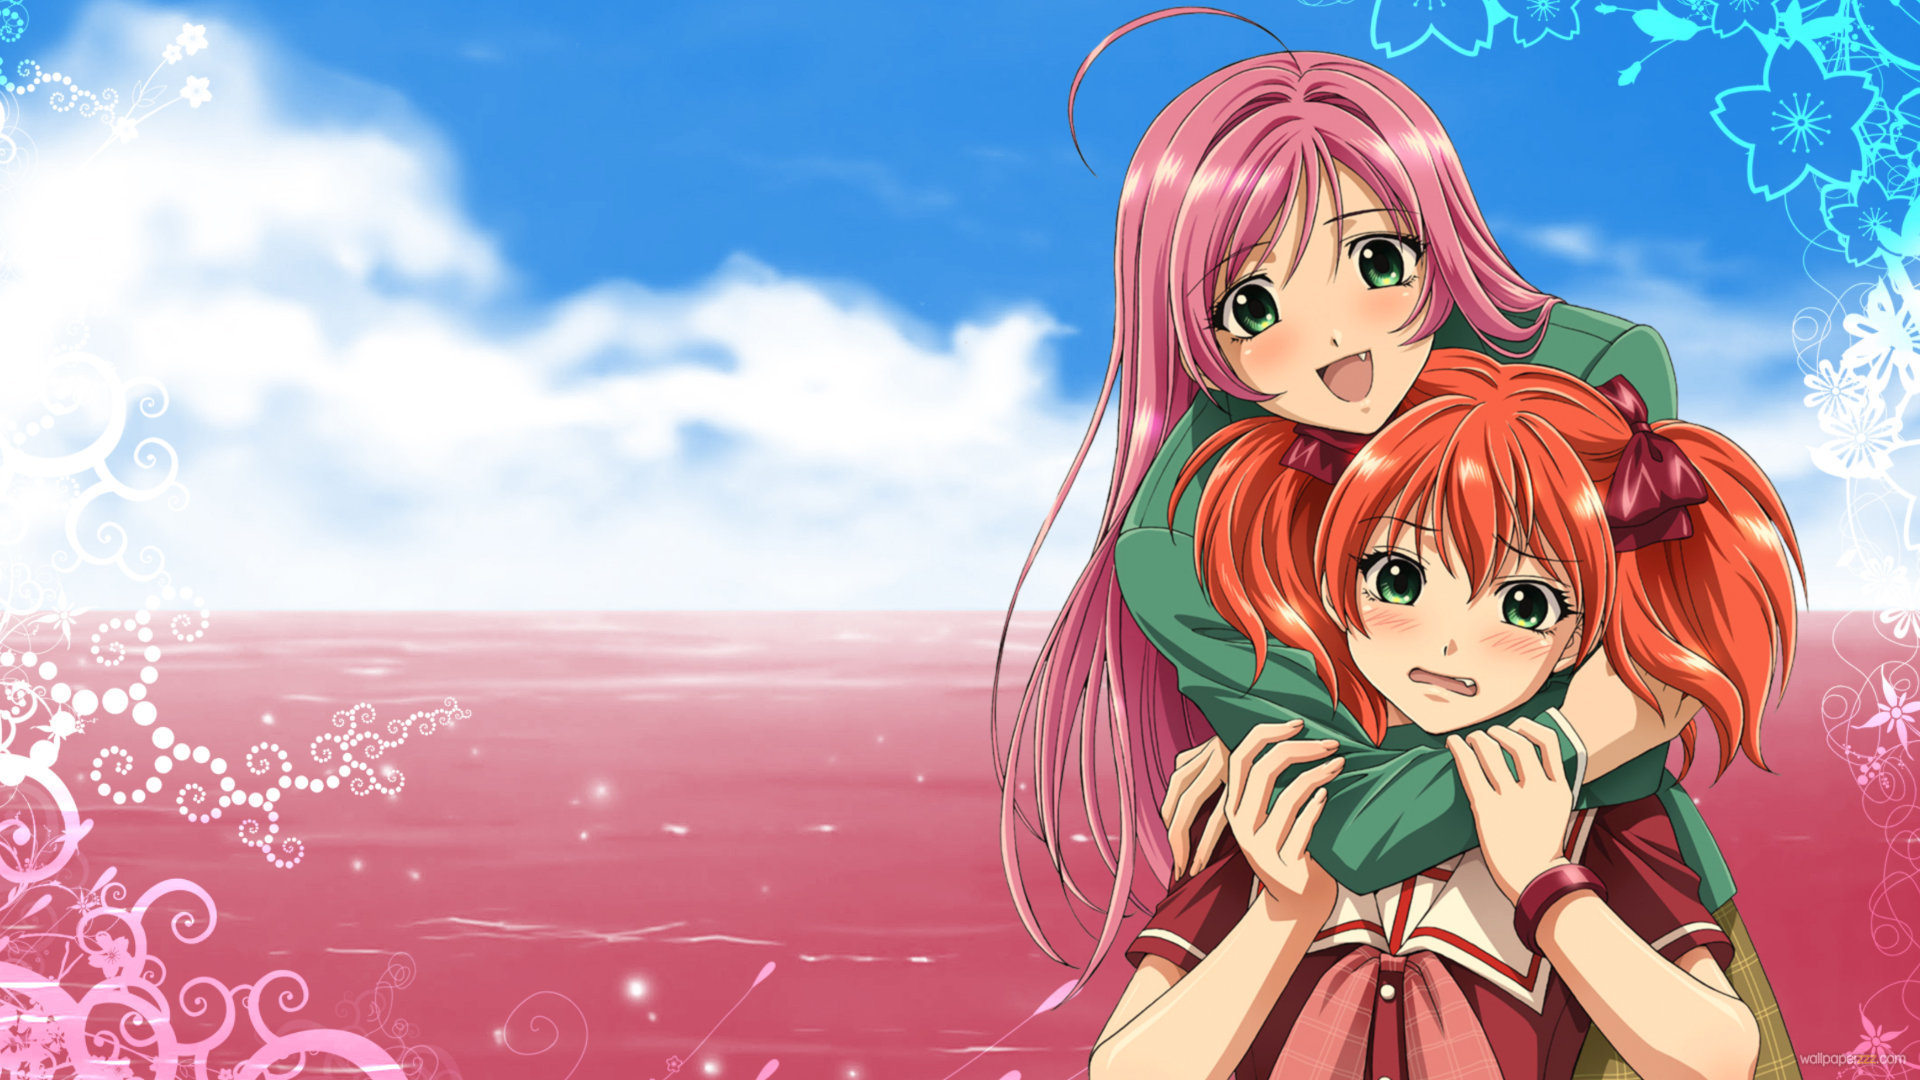 Anime Wallpapers 1920x1080 wallpaper wallpaper hd background 1920x1080